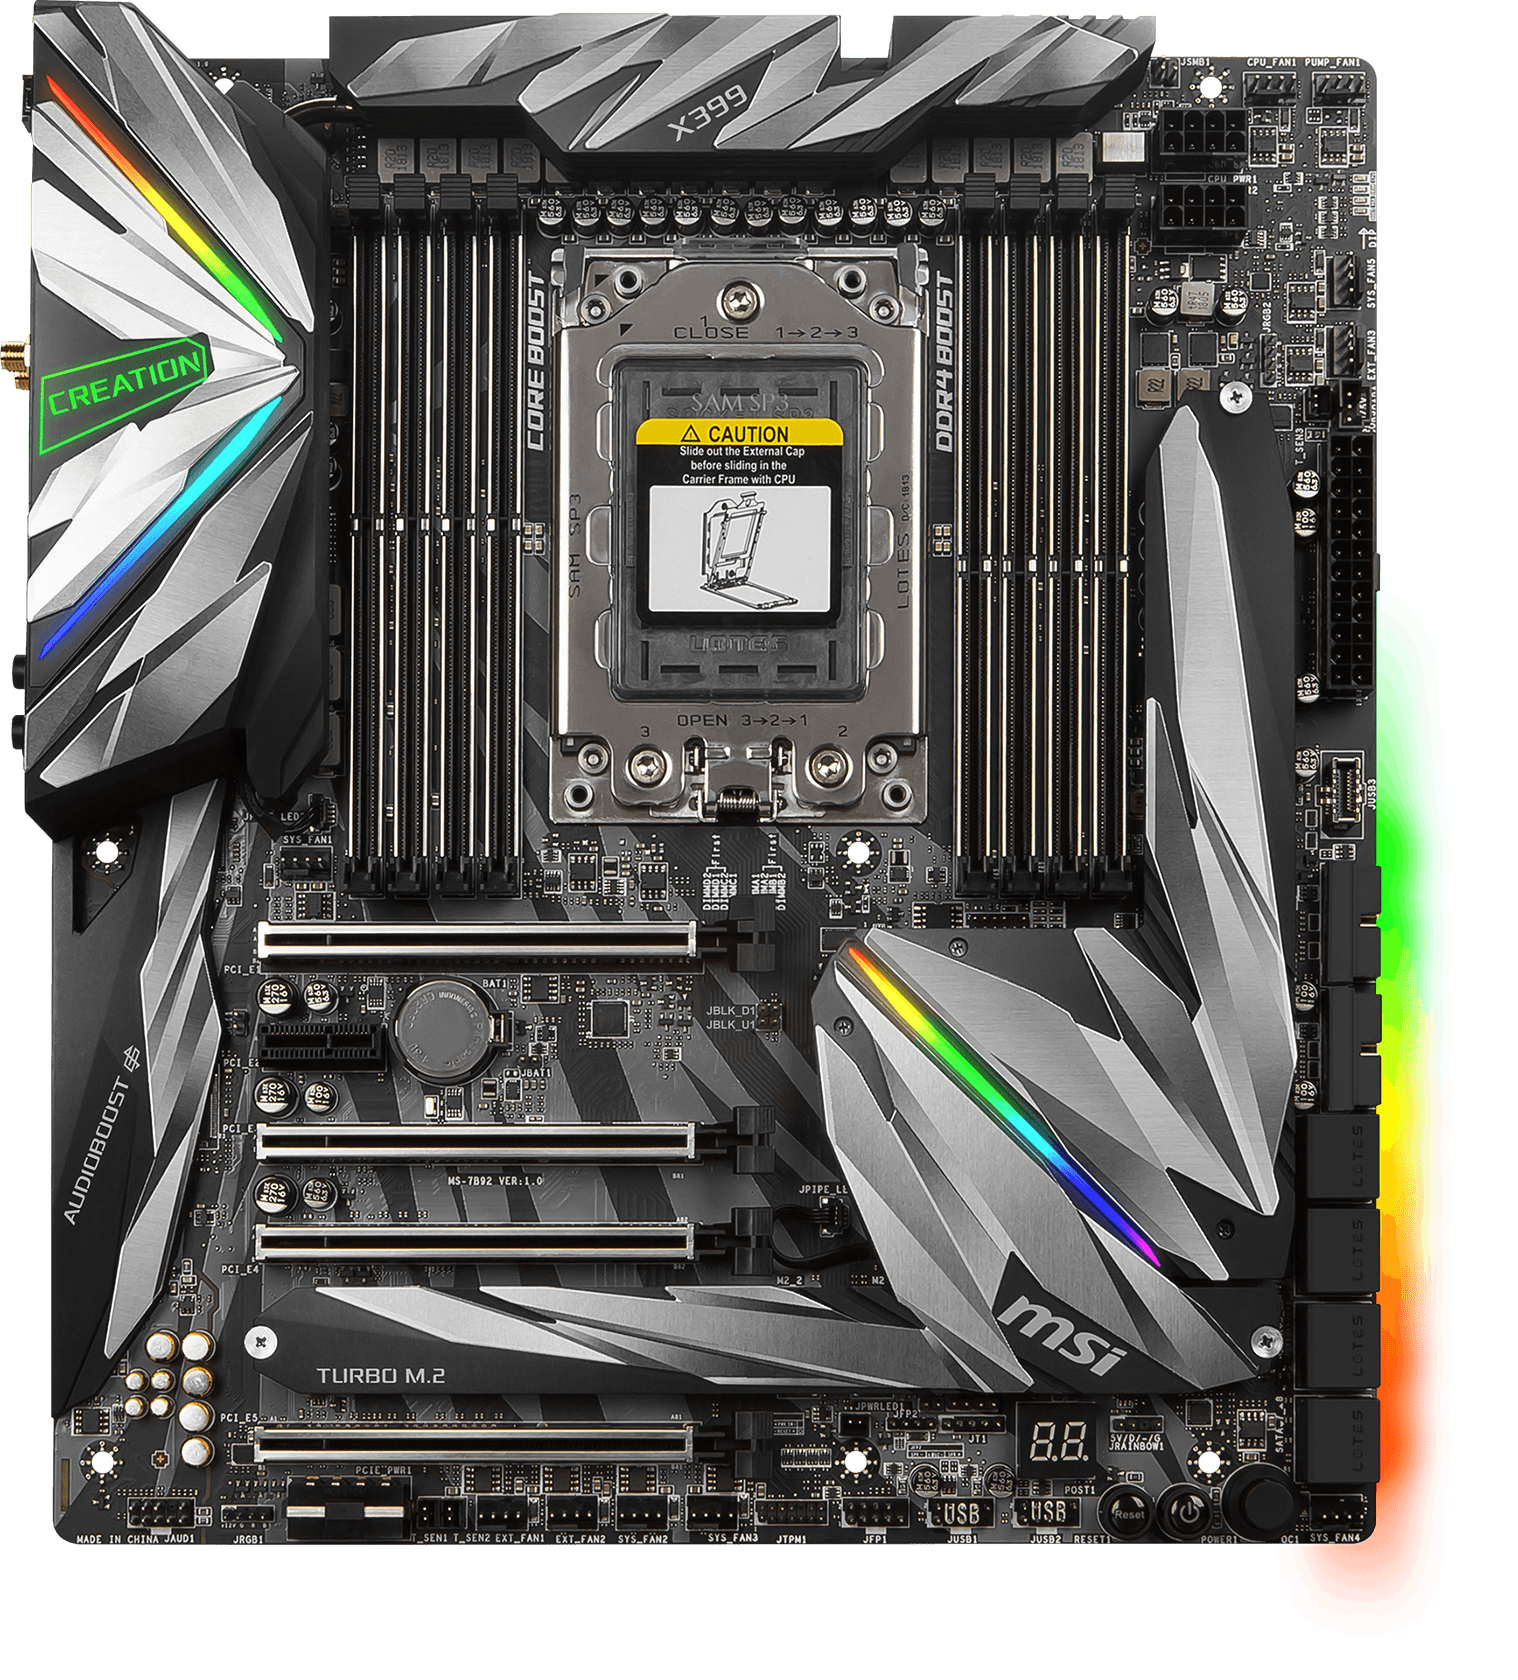 Image result for MSI Gaming AMD Ryzen ThreadRipper DDR4 VR Ready HDMI USB 3 SLI CFX Extended-ATX Motherboard (MEG X399 Creation)